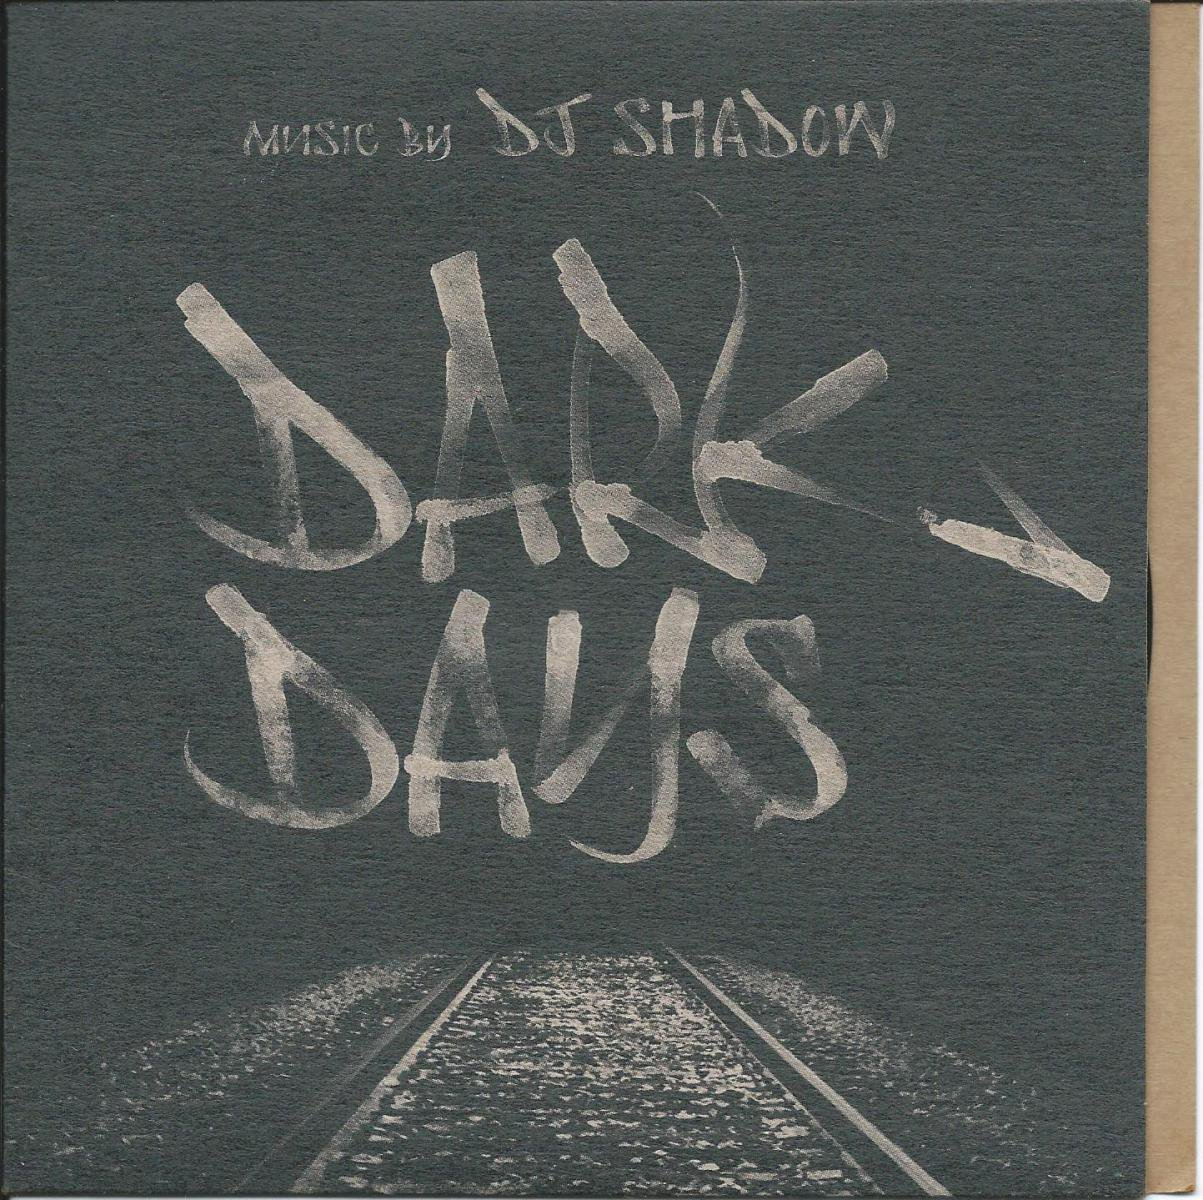 DJ SHADOW / DARK DAYS (7